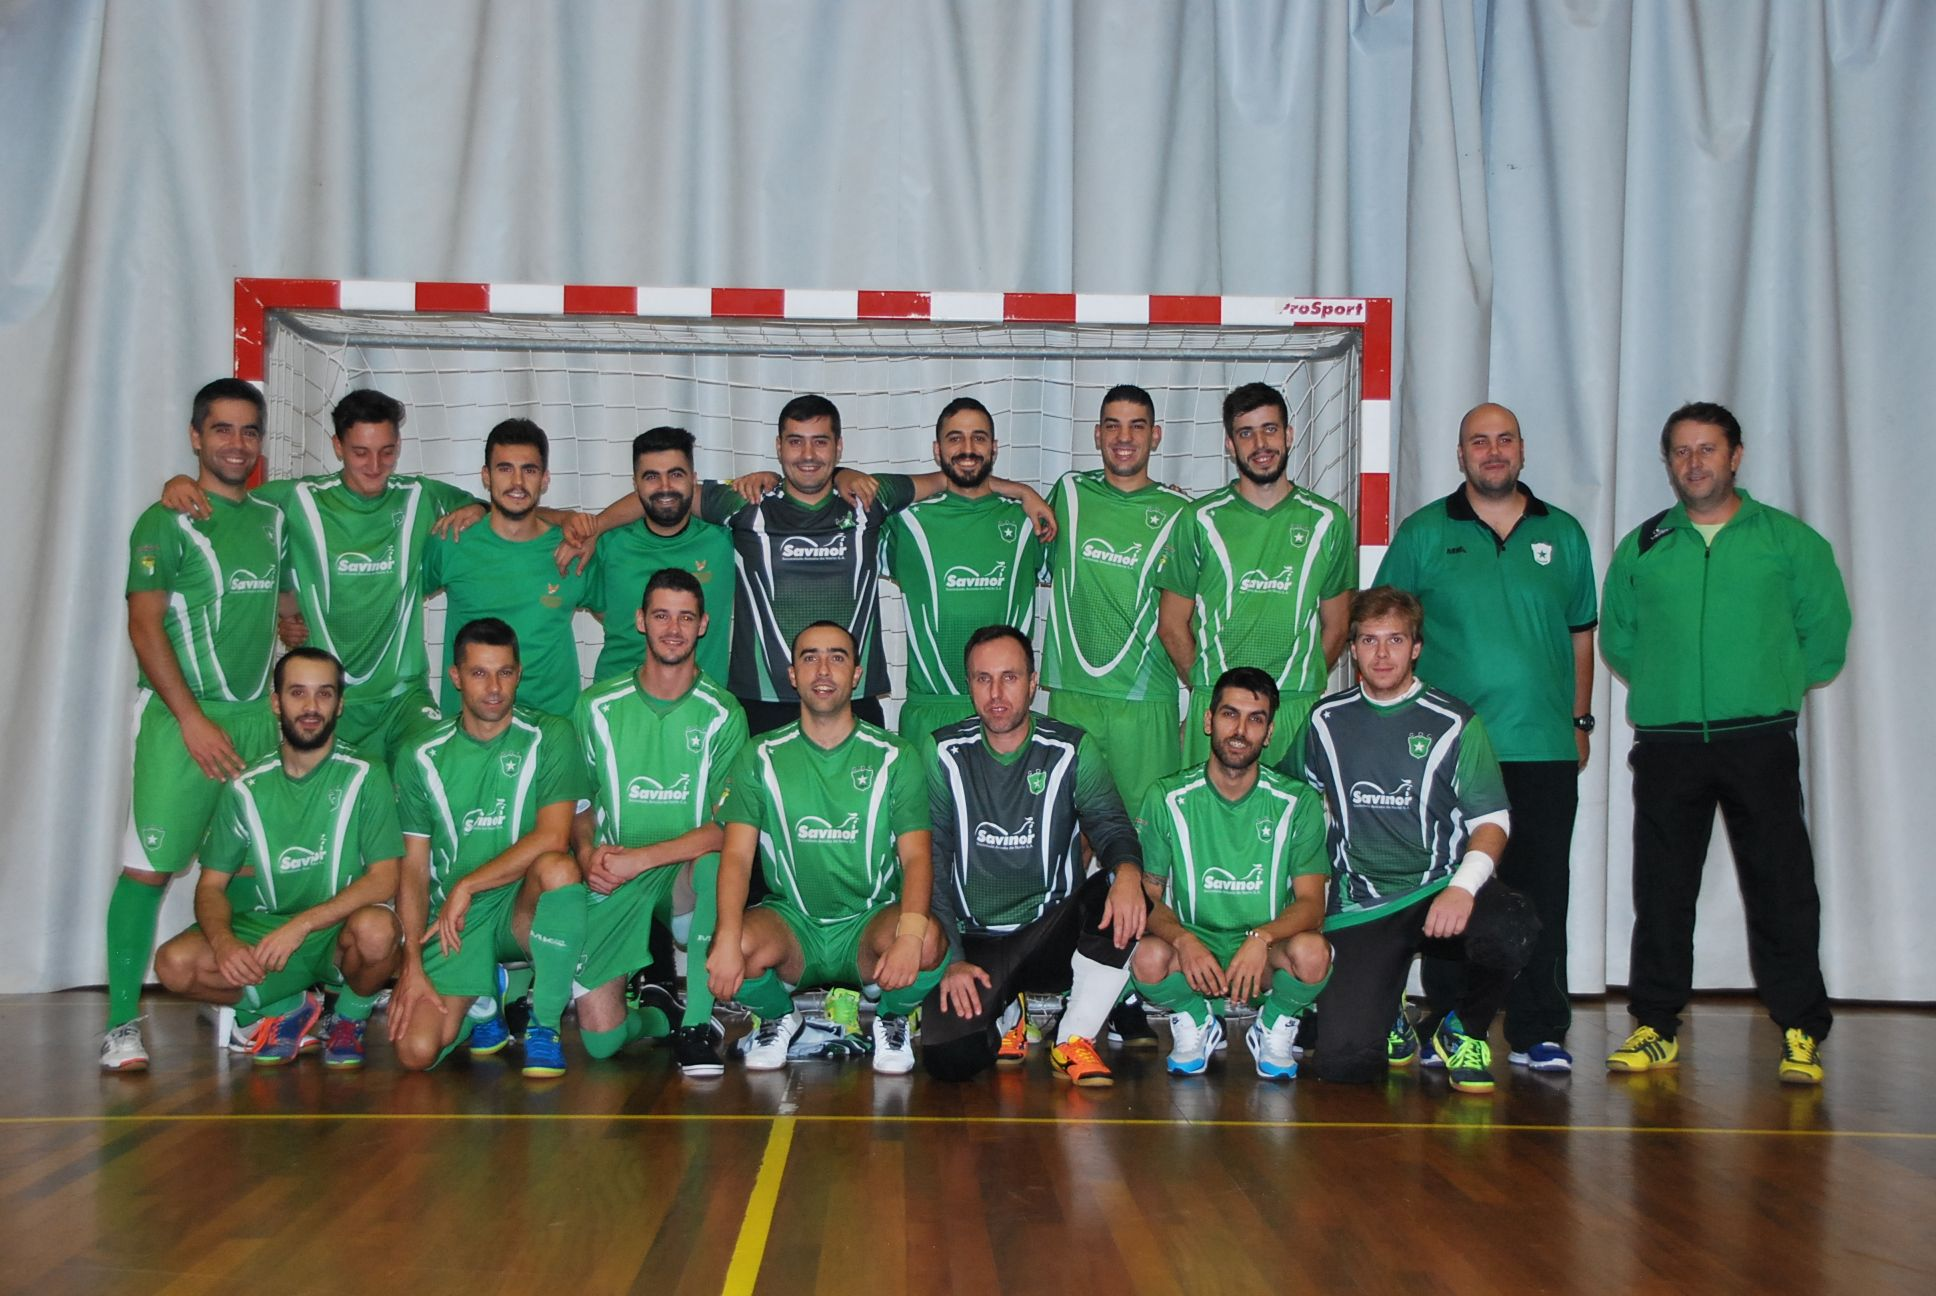 SAVINOR apoia o Futsal do Grupo Desportivo de Covelas